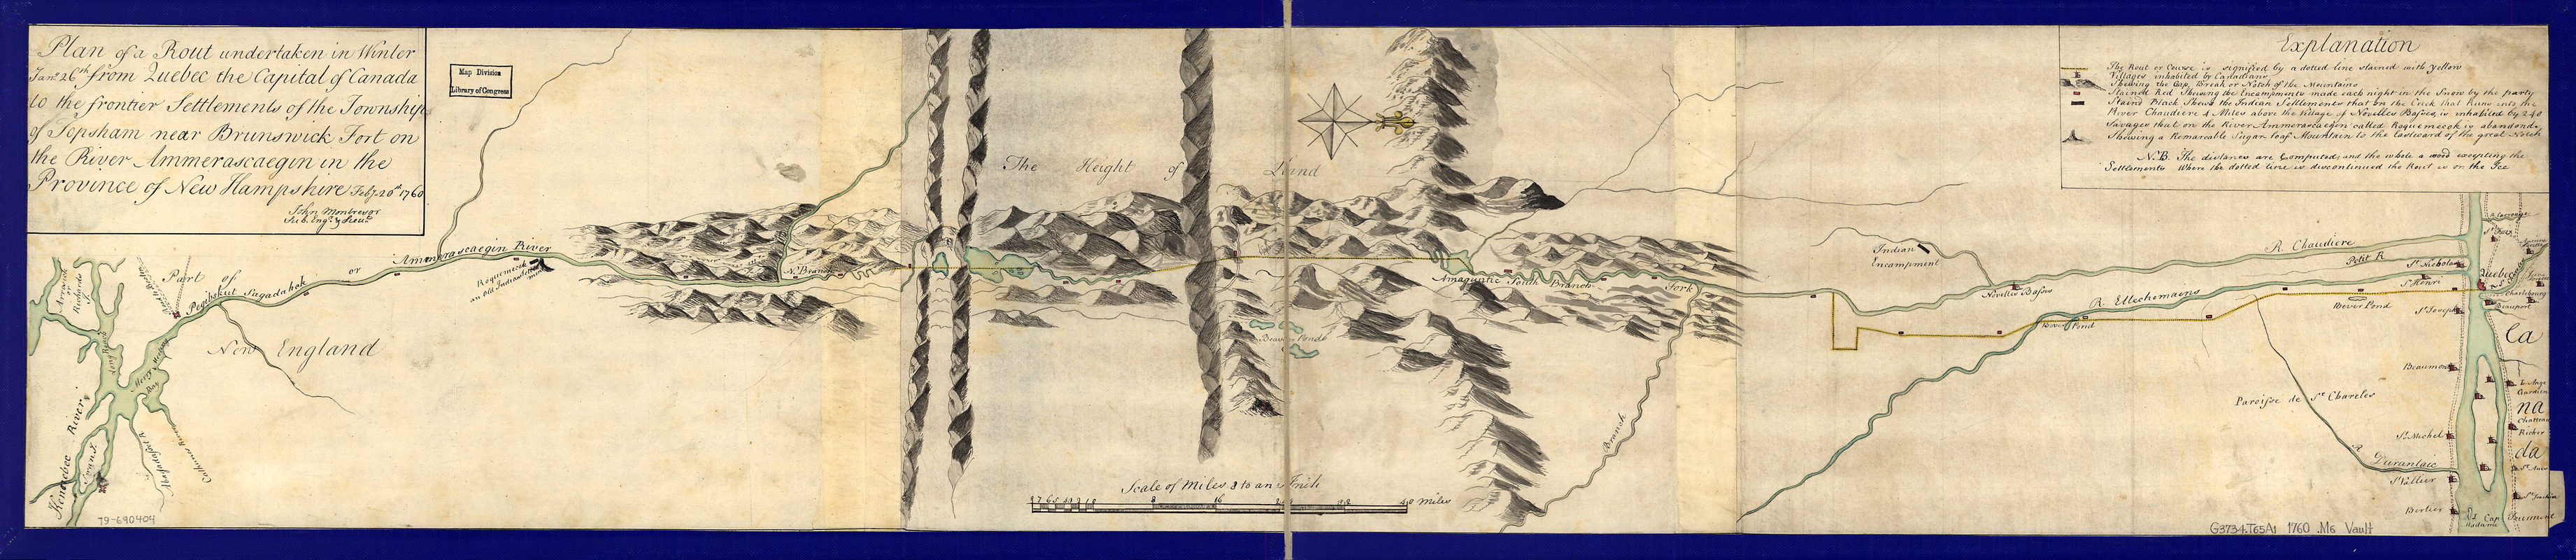 Plan of a rout undertaken in winter, Jany. 26th